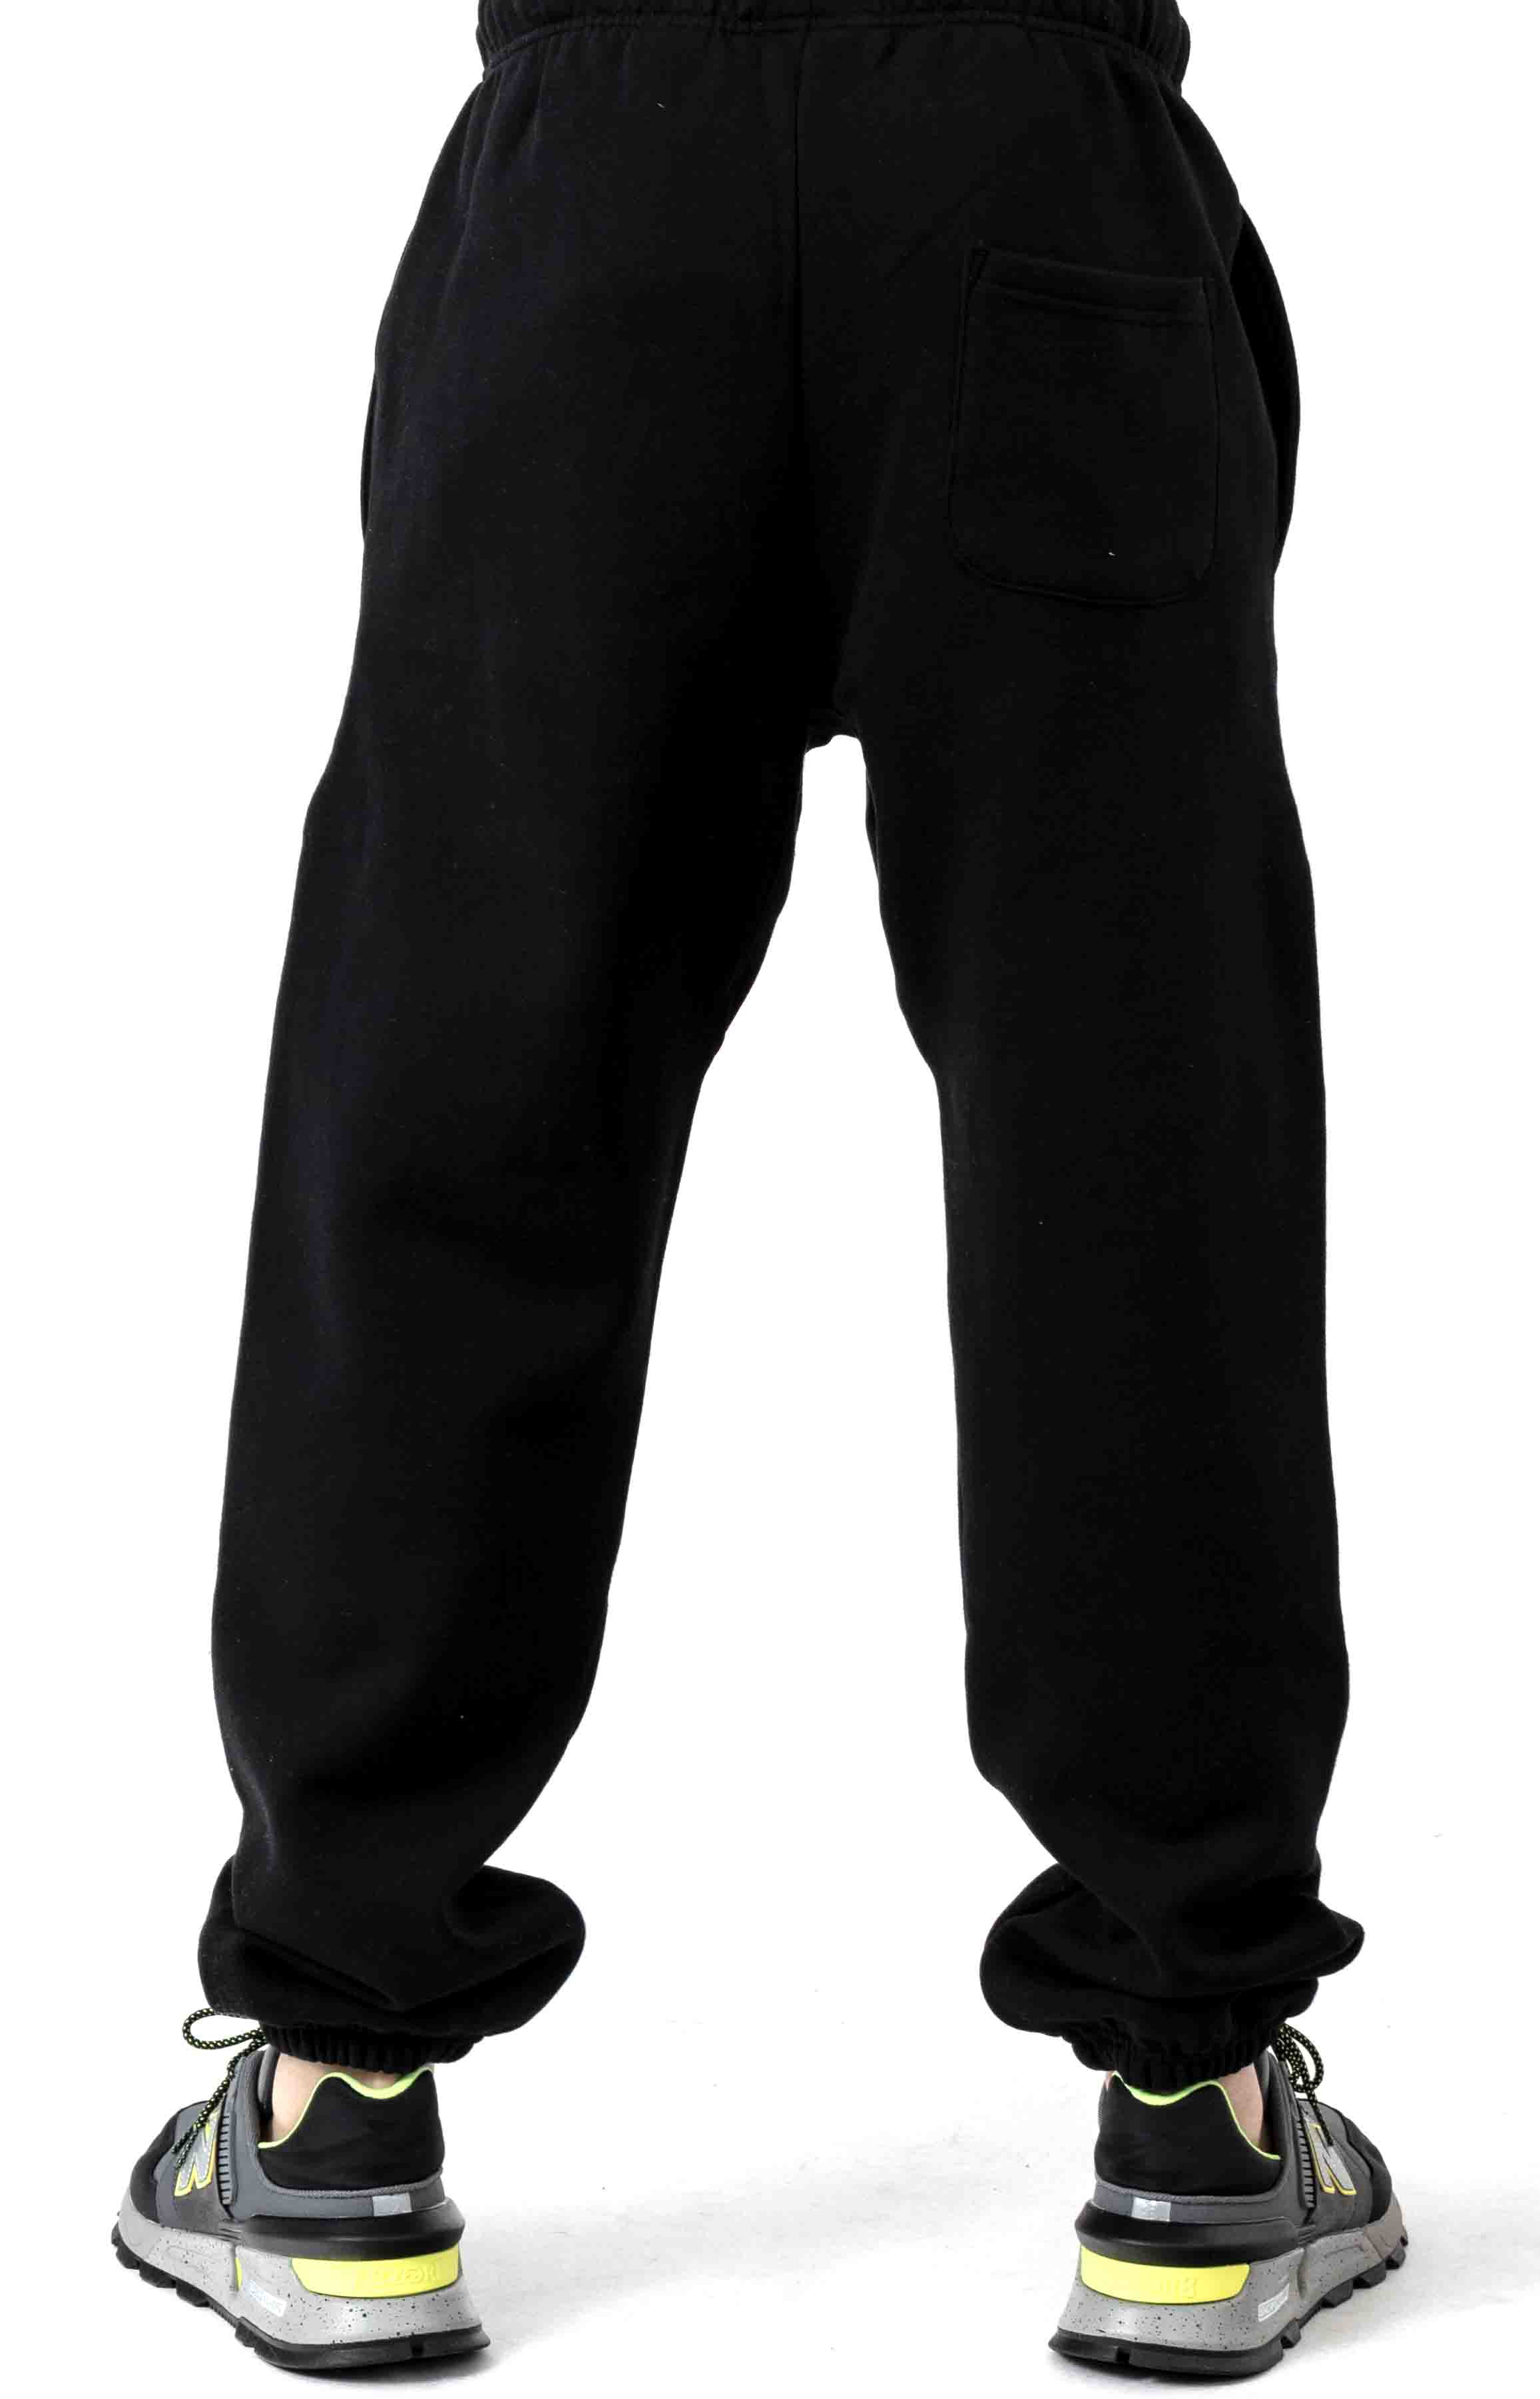 Butterfly Embroidered Sweatpants - Black 3